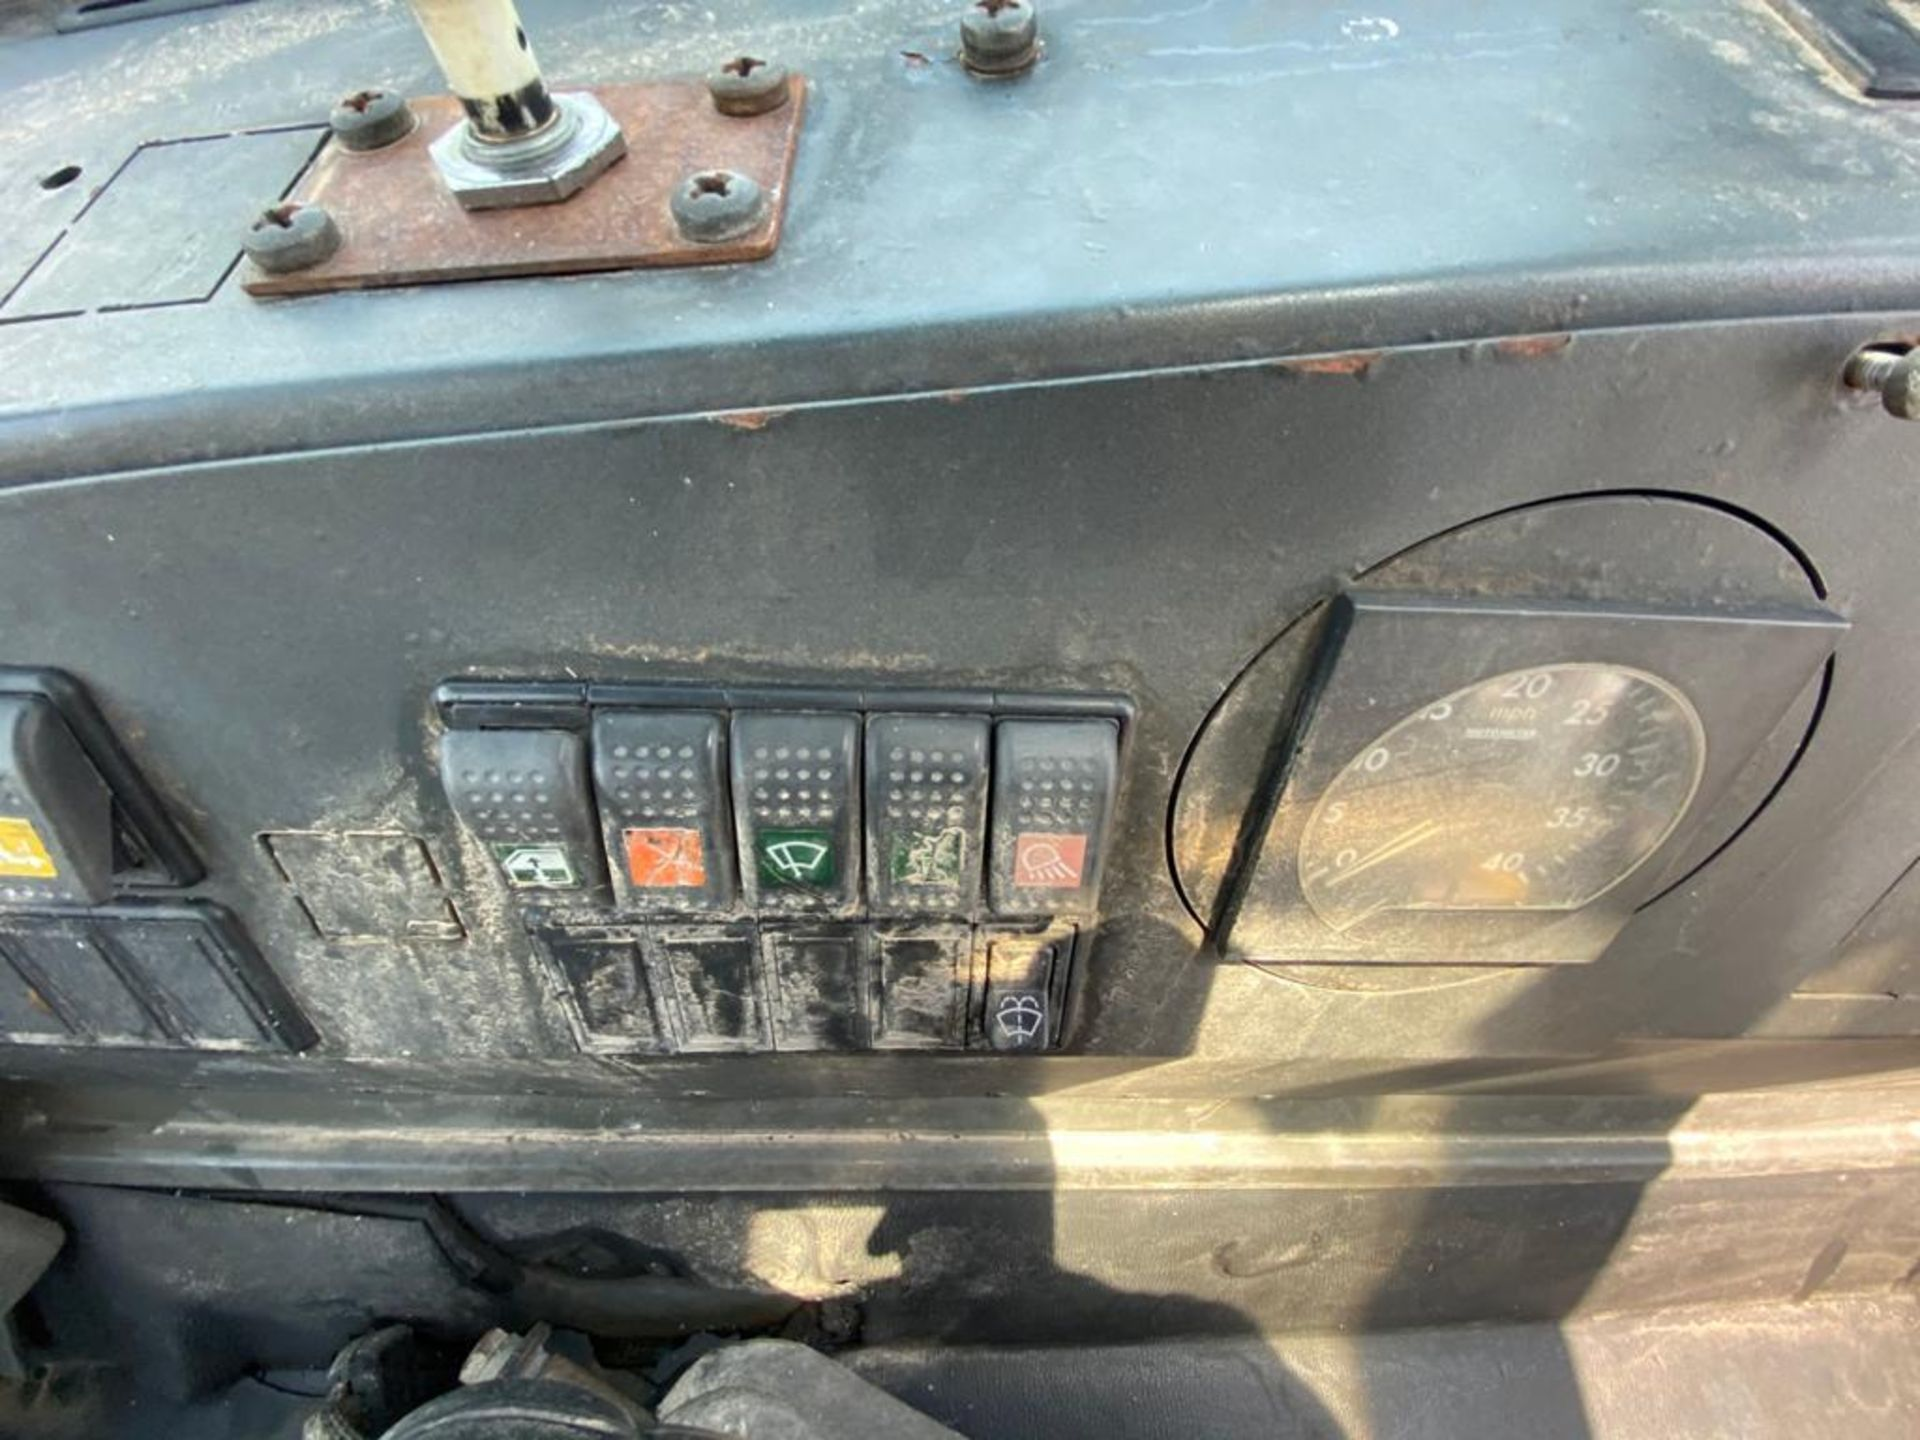 Terberg Capacity 2002 Terminal Tractor, automatic transmission, with Volvo motor - Image 25 of 57